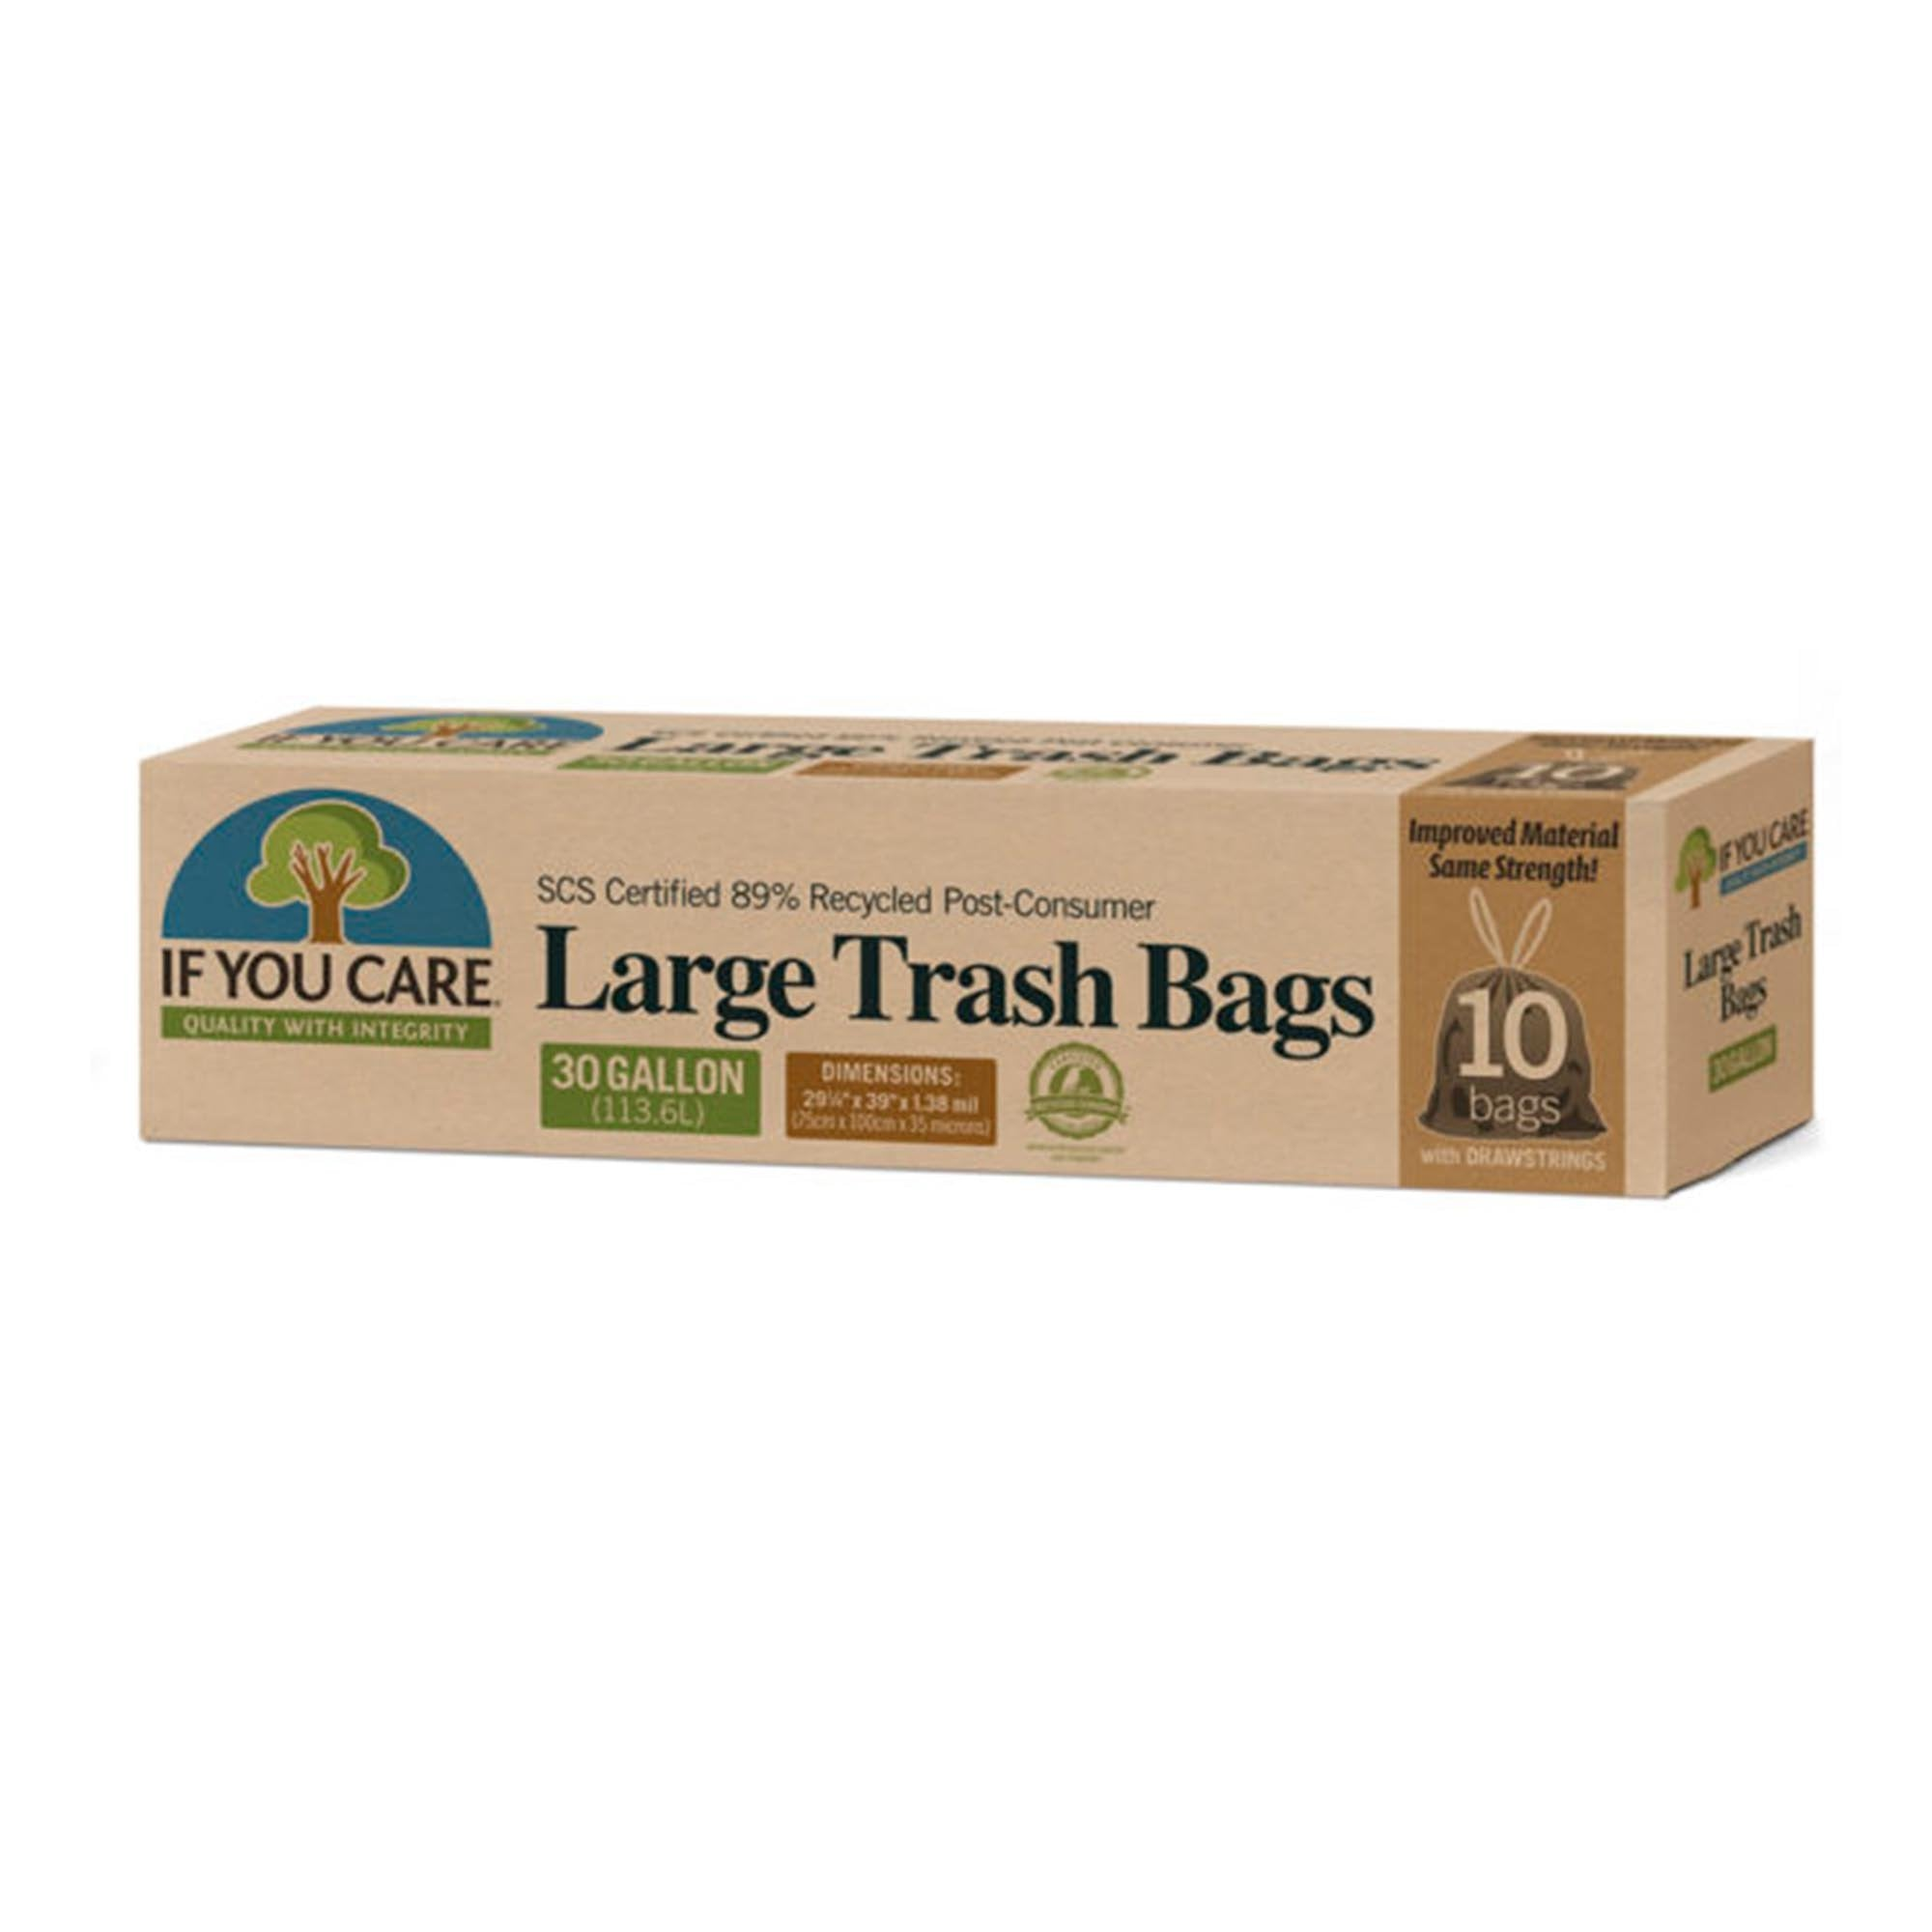 Recycled Trash Bags with Draw String — 13 or 30 Gallon